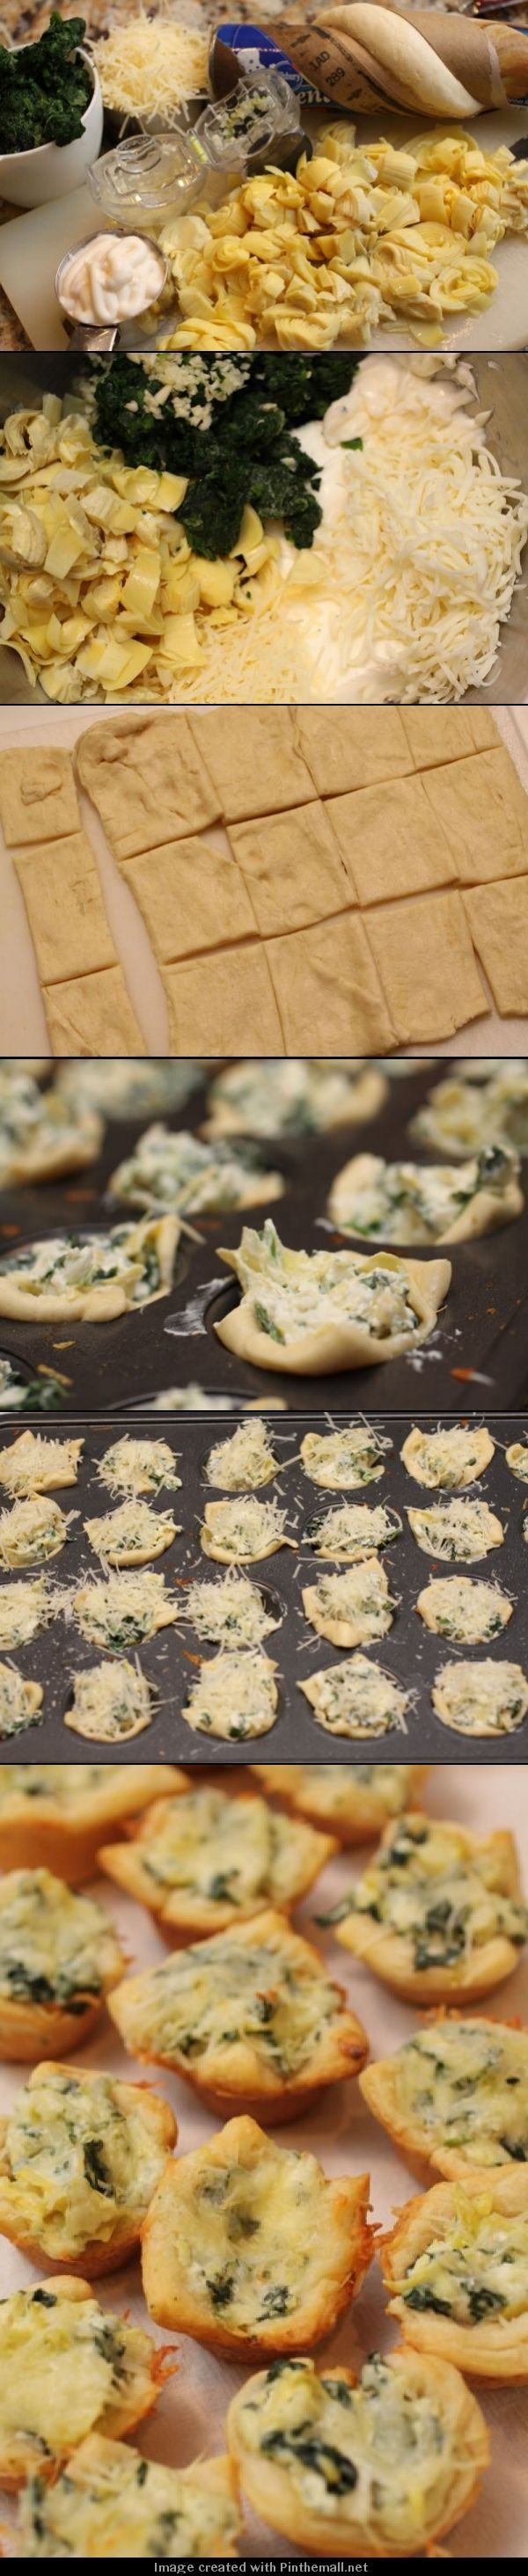 Artichoke Bites - you could make these even faster by using wonton wrappers in your mini muffin pan!